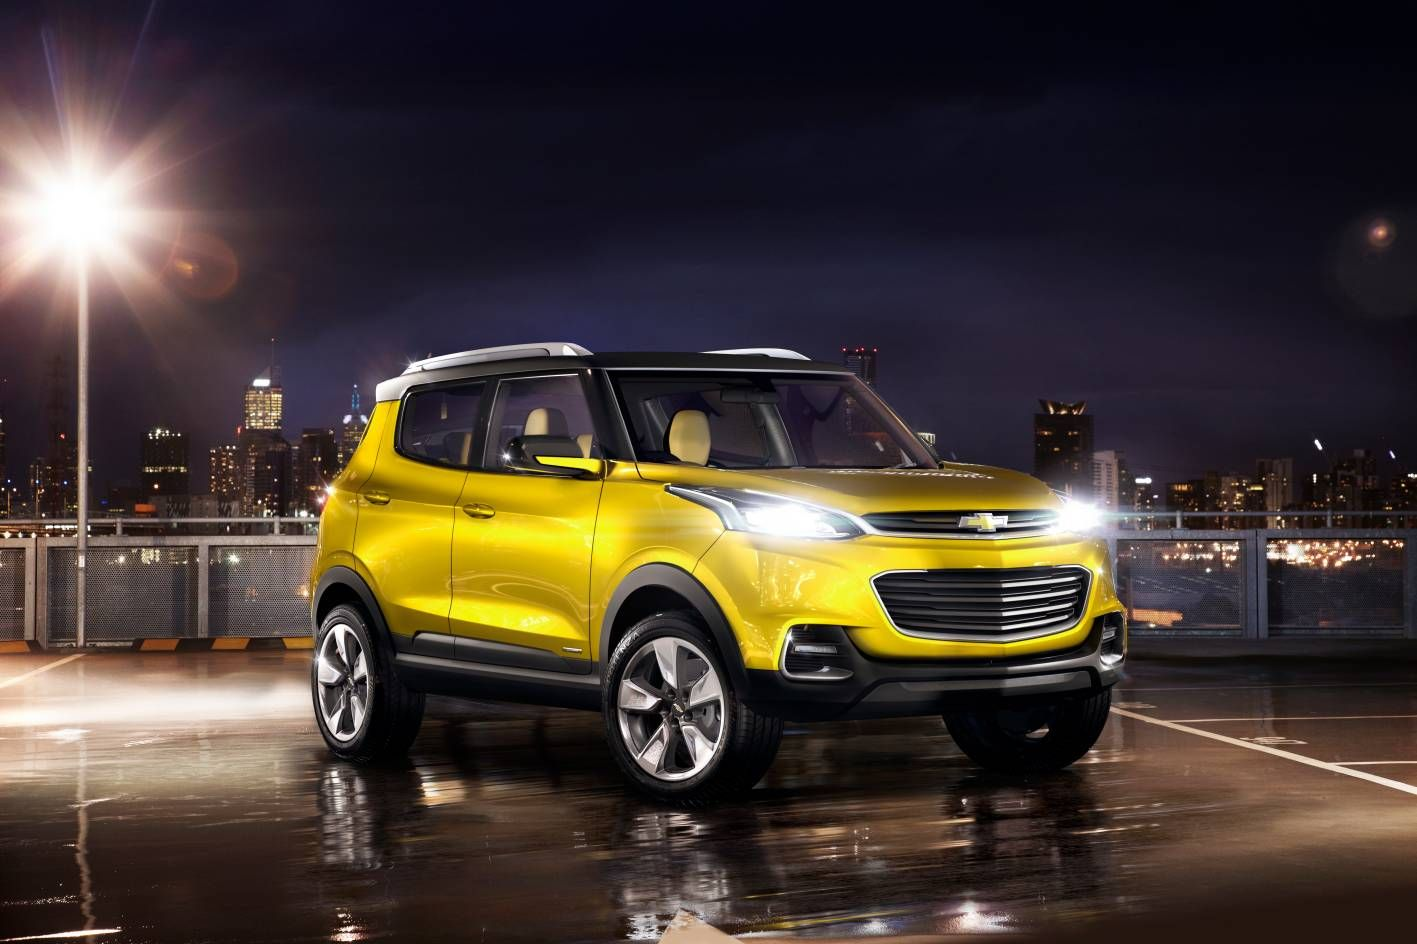 Chevrolet Cars News Chevrolet Adra Small Suv For India Moyen De Transport Des Voitures Voiture